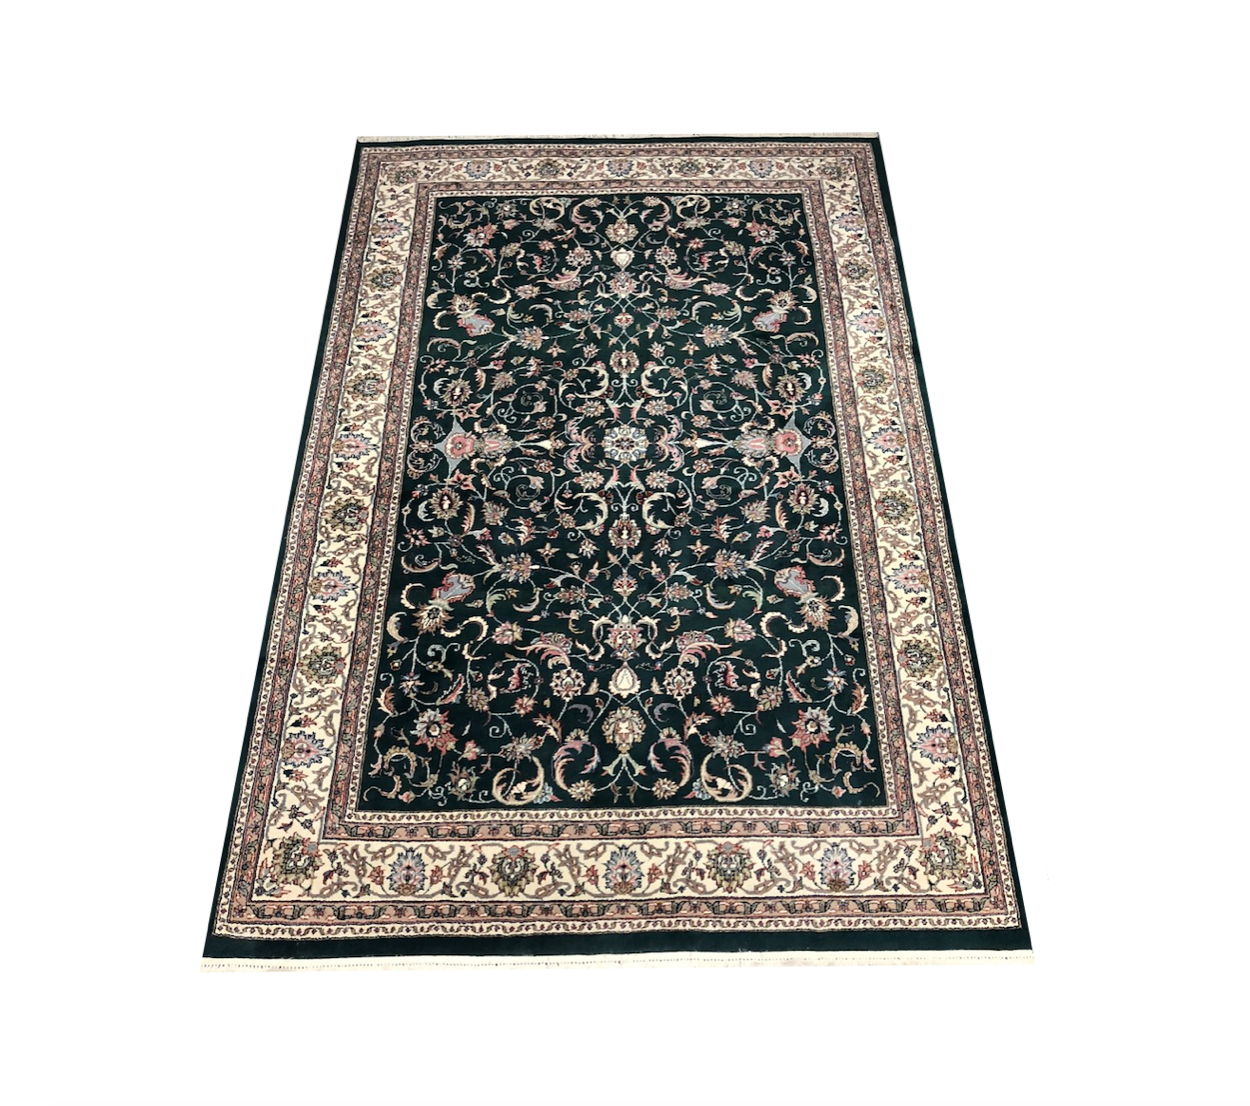 Ornate Emerald Green Floral Wool Area Rug Original Price